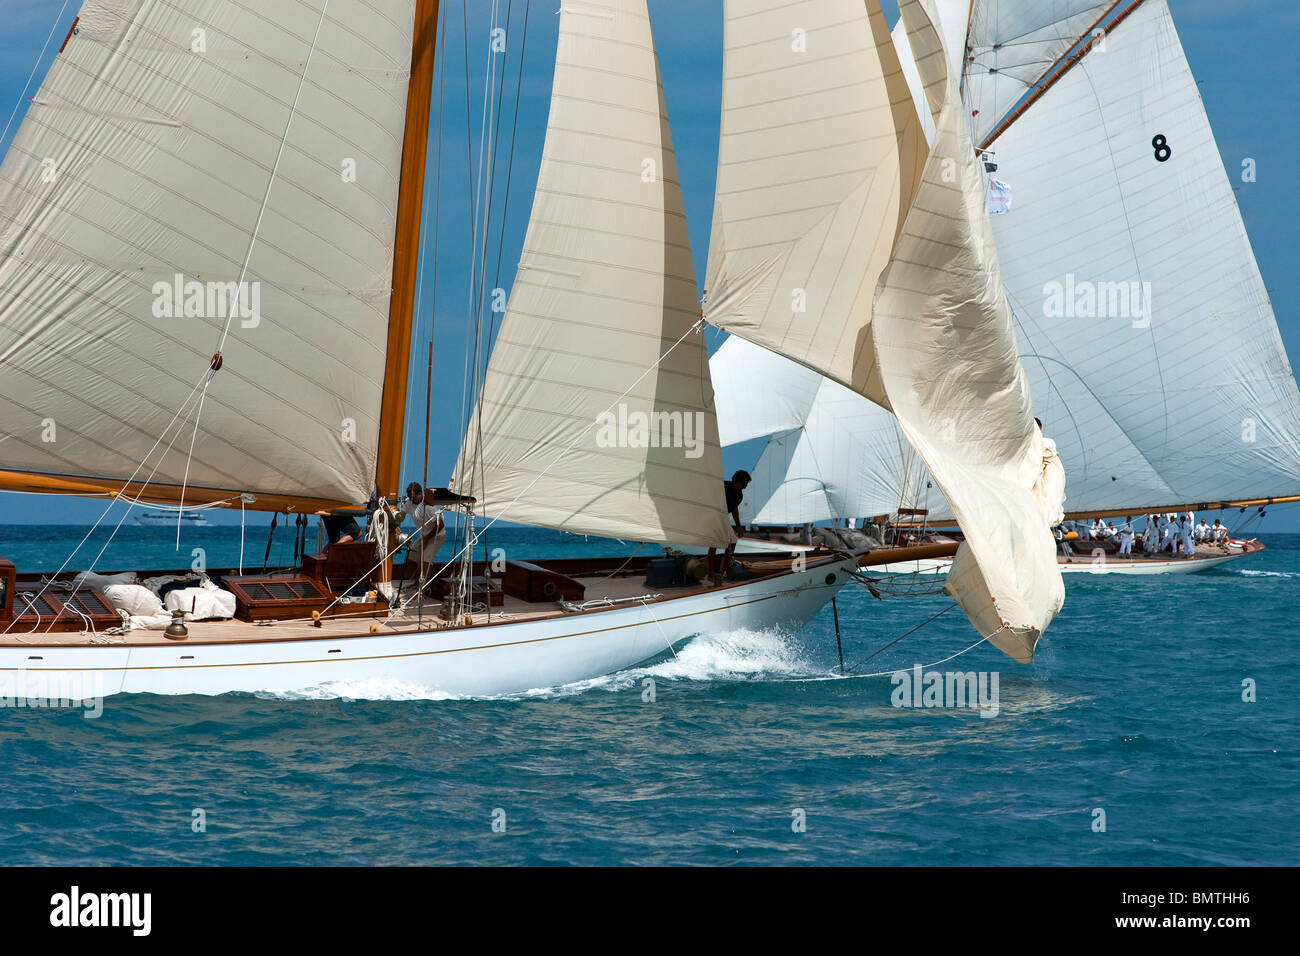 Encounter of two classic yachts Stock Photo